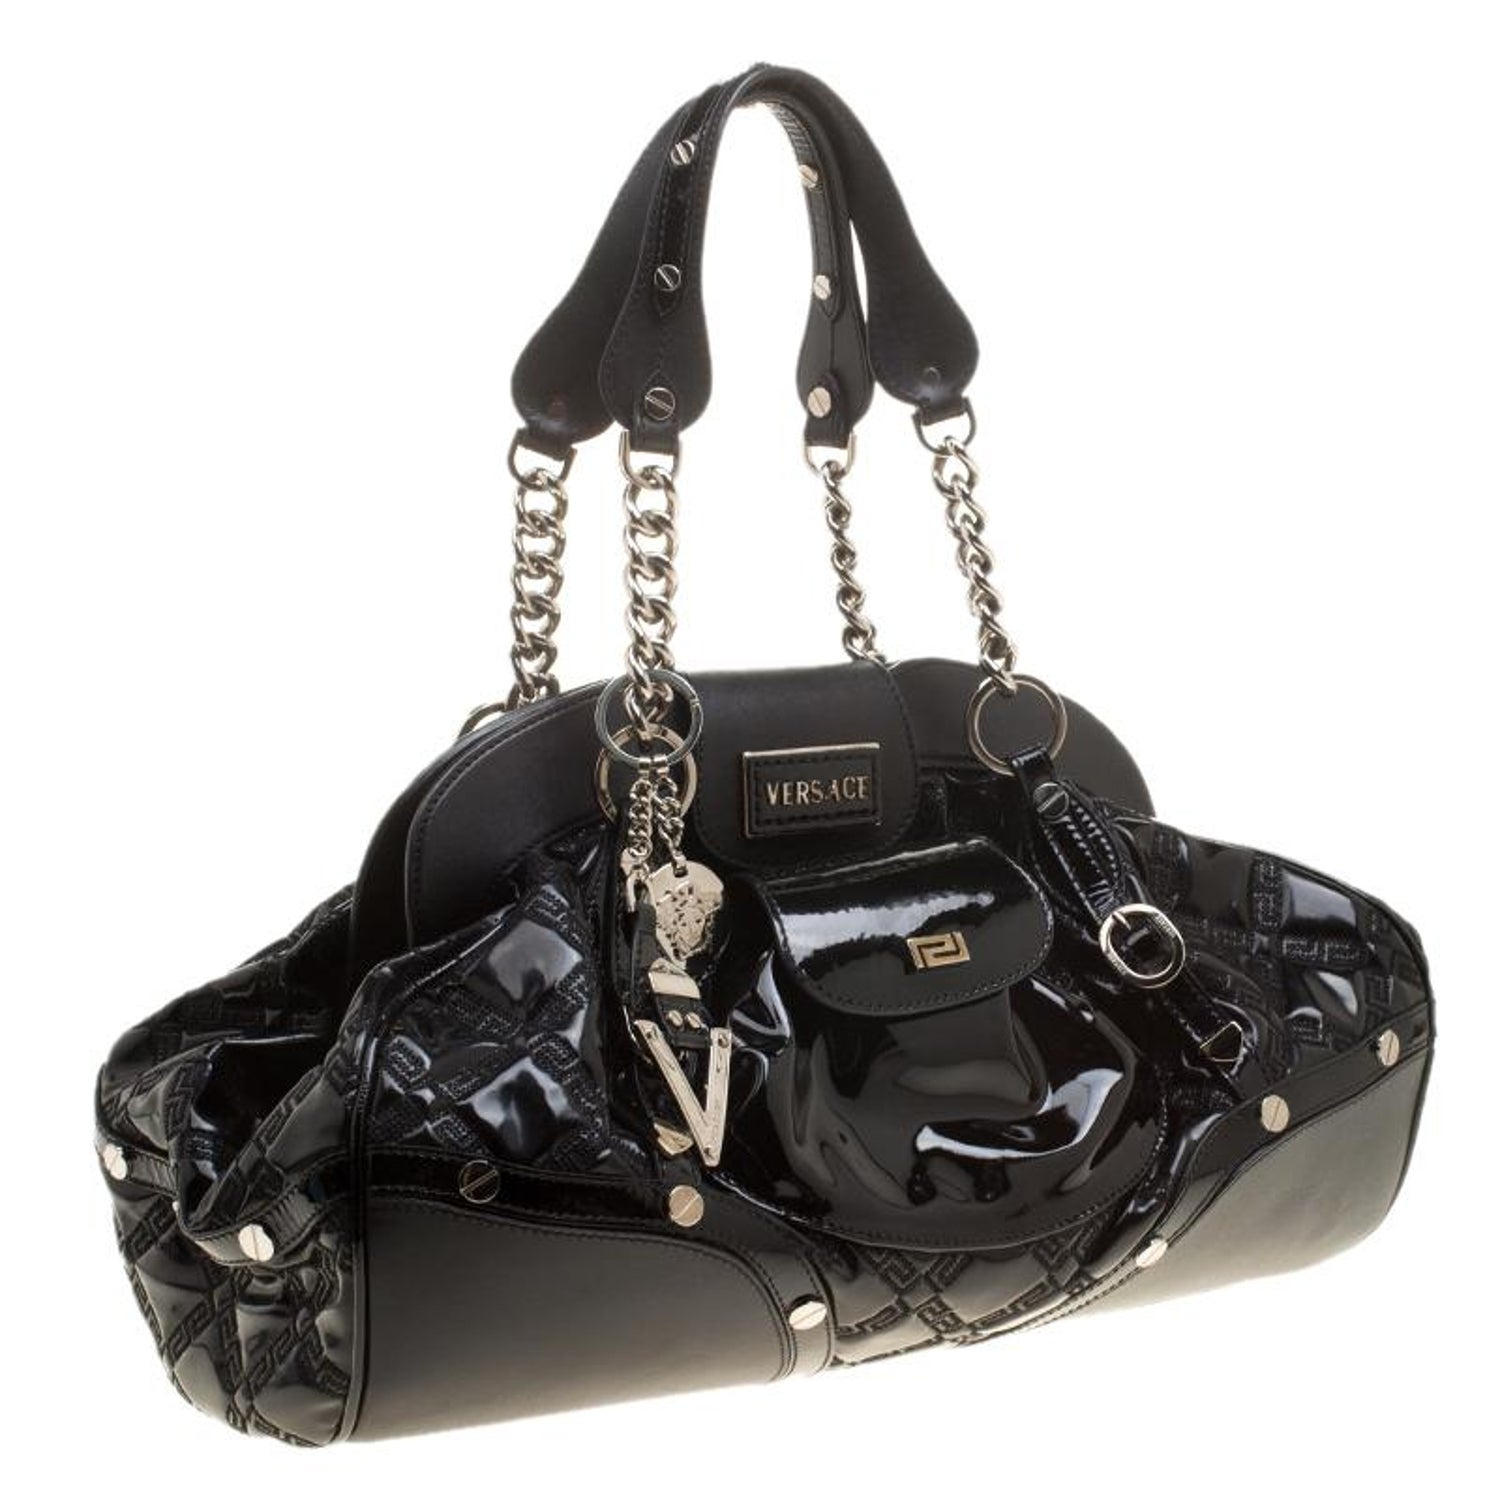 7294c8c1c7 Versace Black Patent Leather Chain Link Satchel at 1stdibs